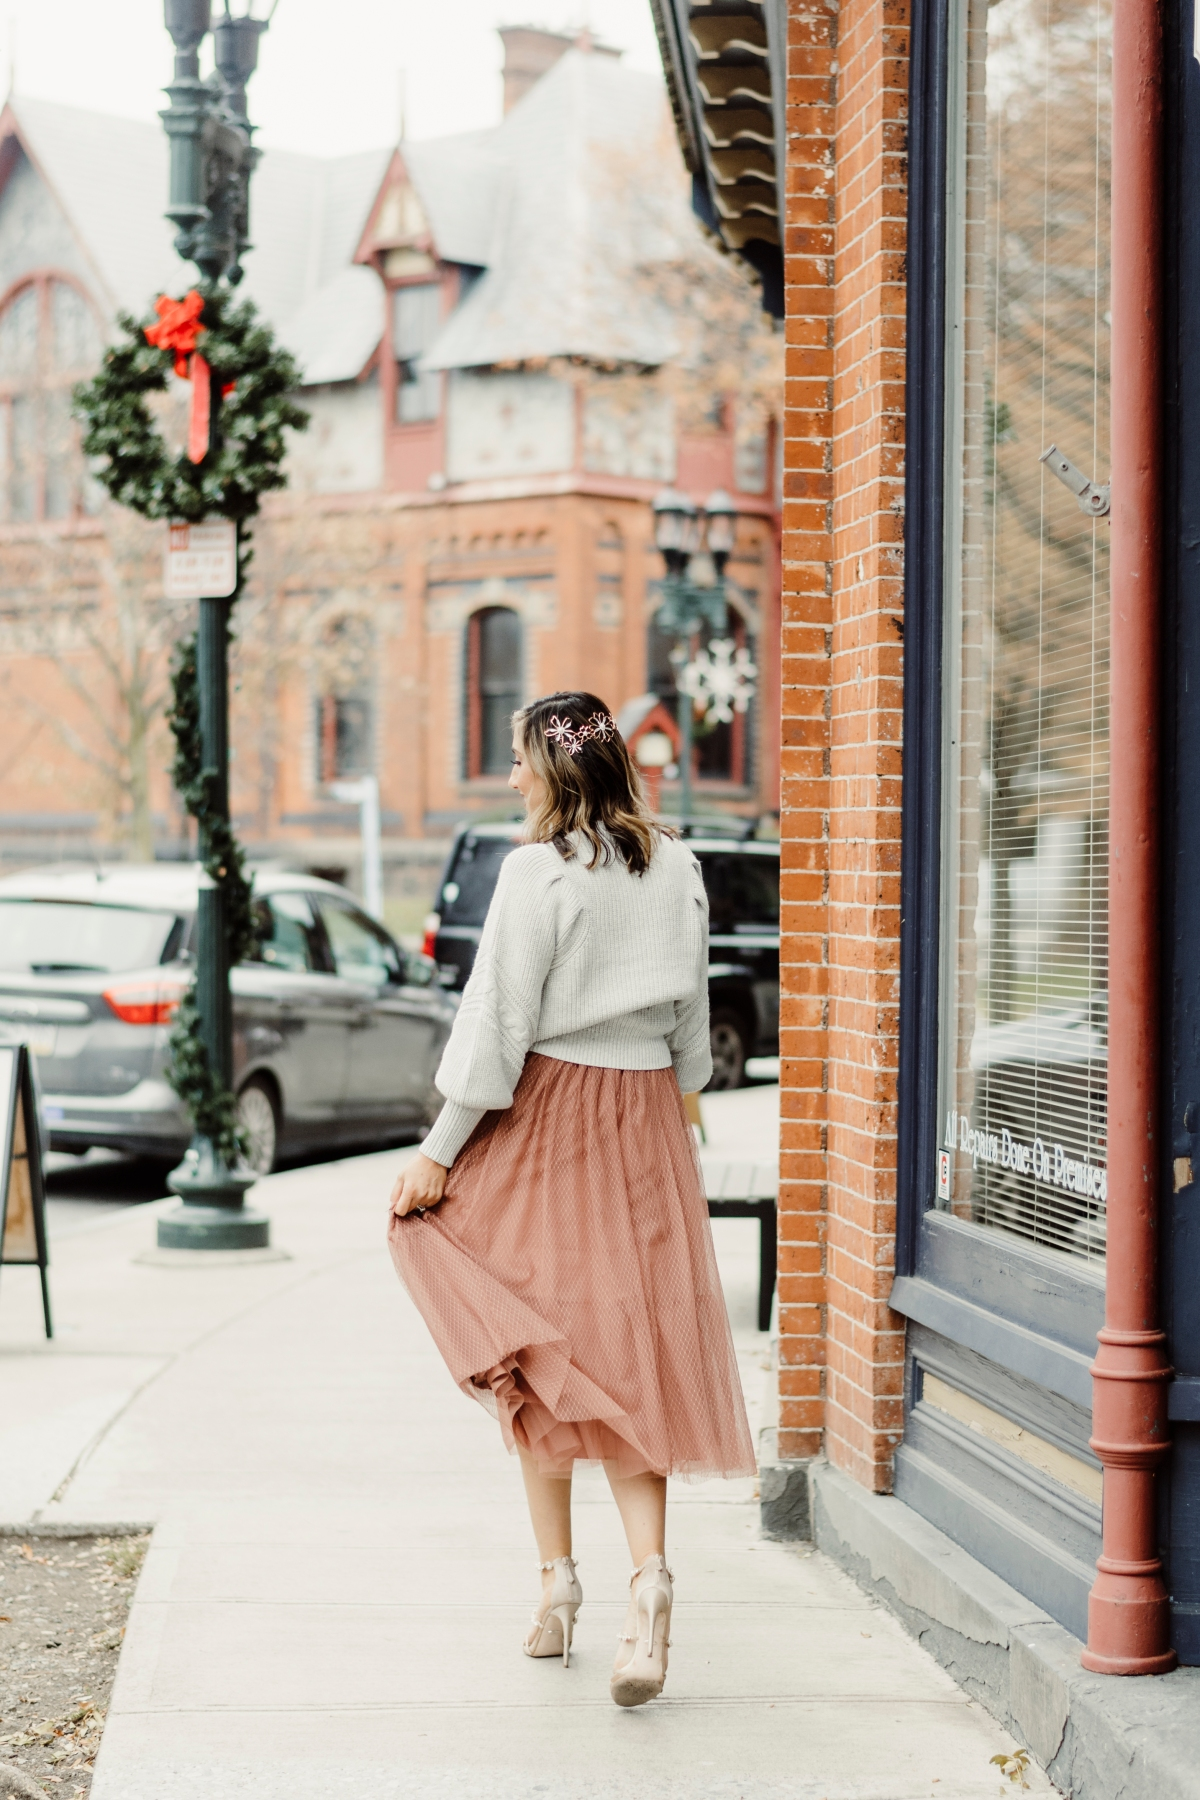 day-to-night-holiday-look-chunky-sweater-express-dress-shoes-heels-nordstrom-style-fashion-winter-casual-trend-stylish